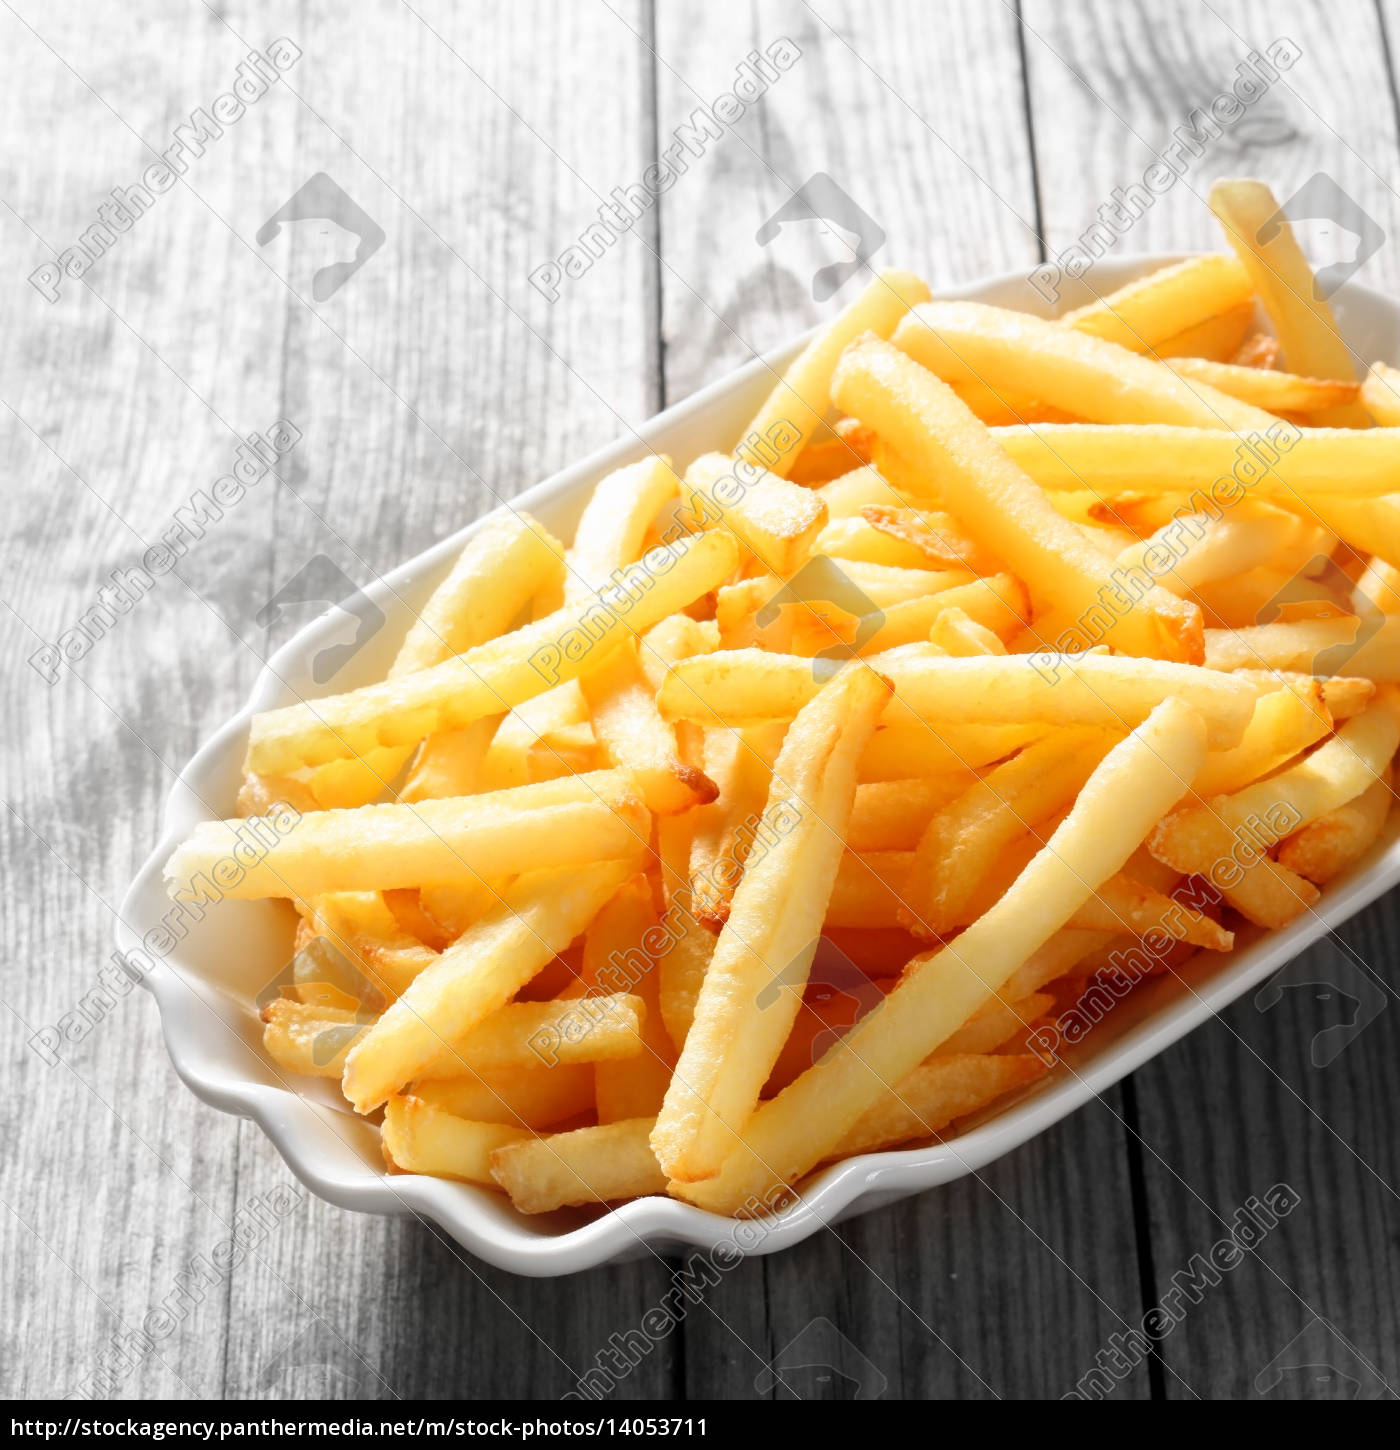 cooked, french, fries, on, white, plate - 14053711